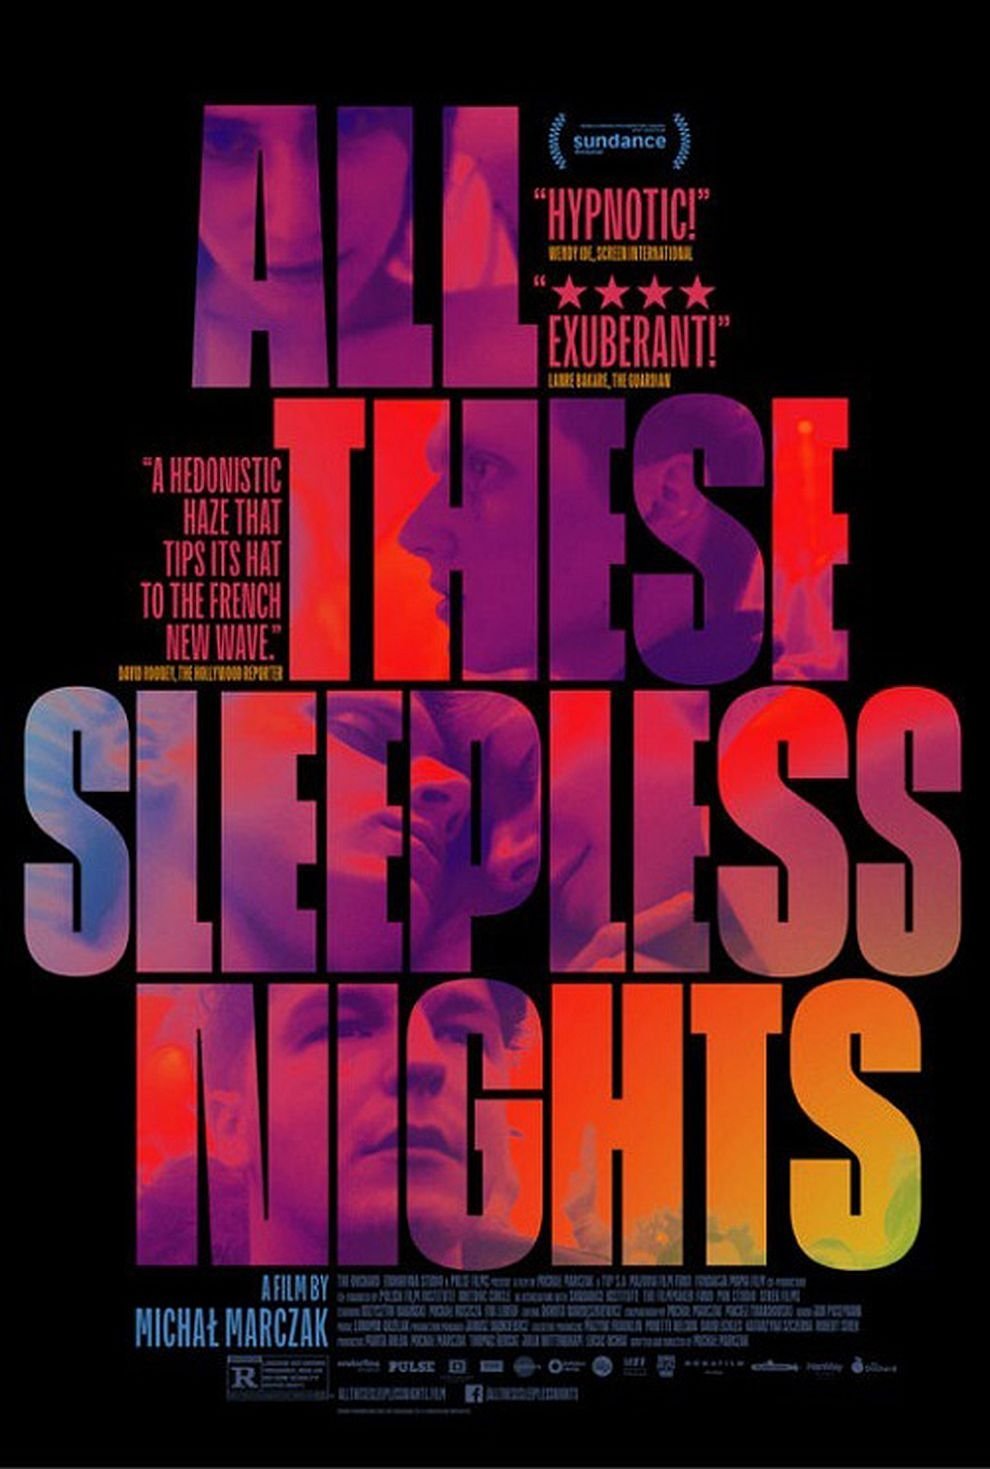 All These Sleepless Nights (Poster)